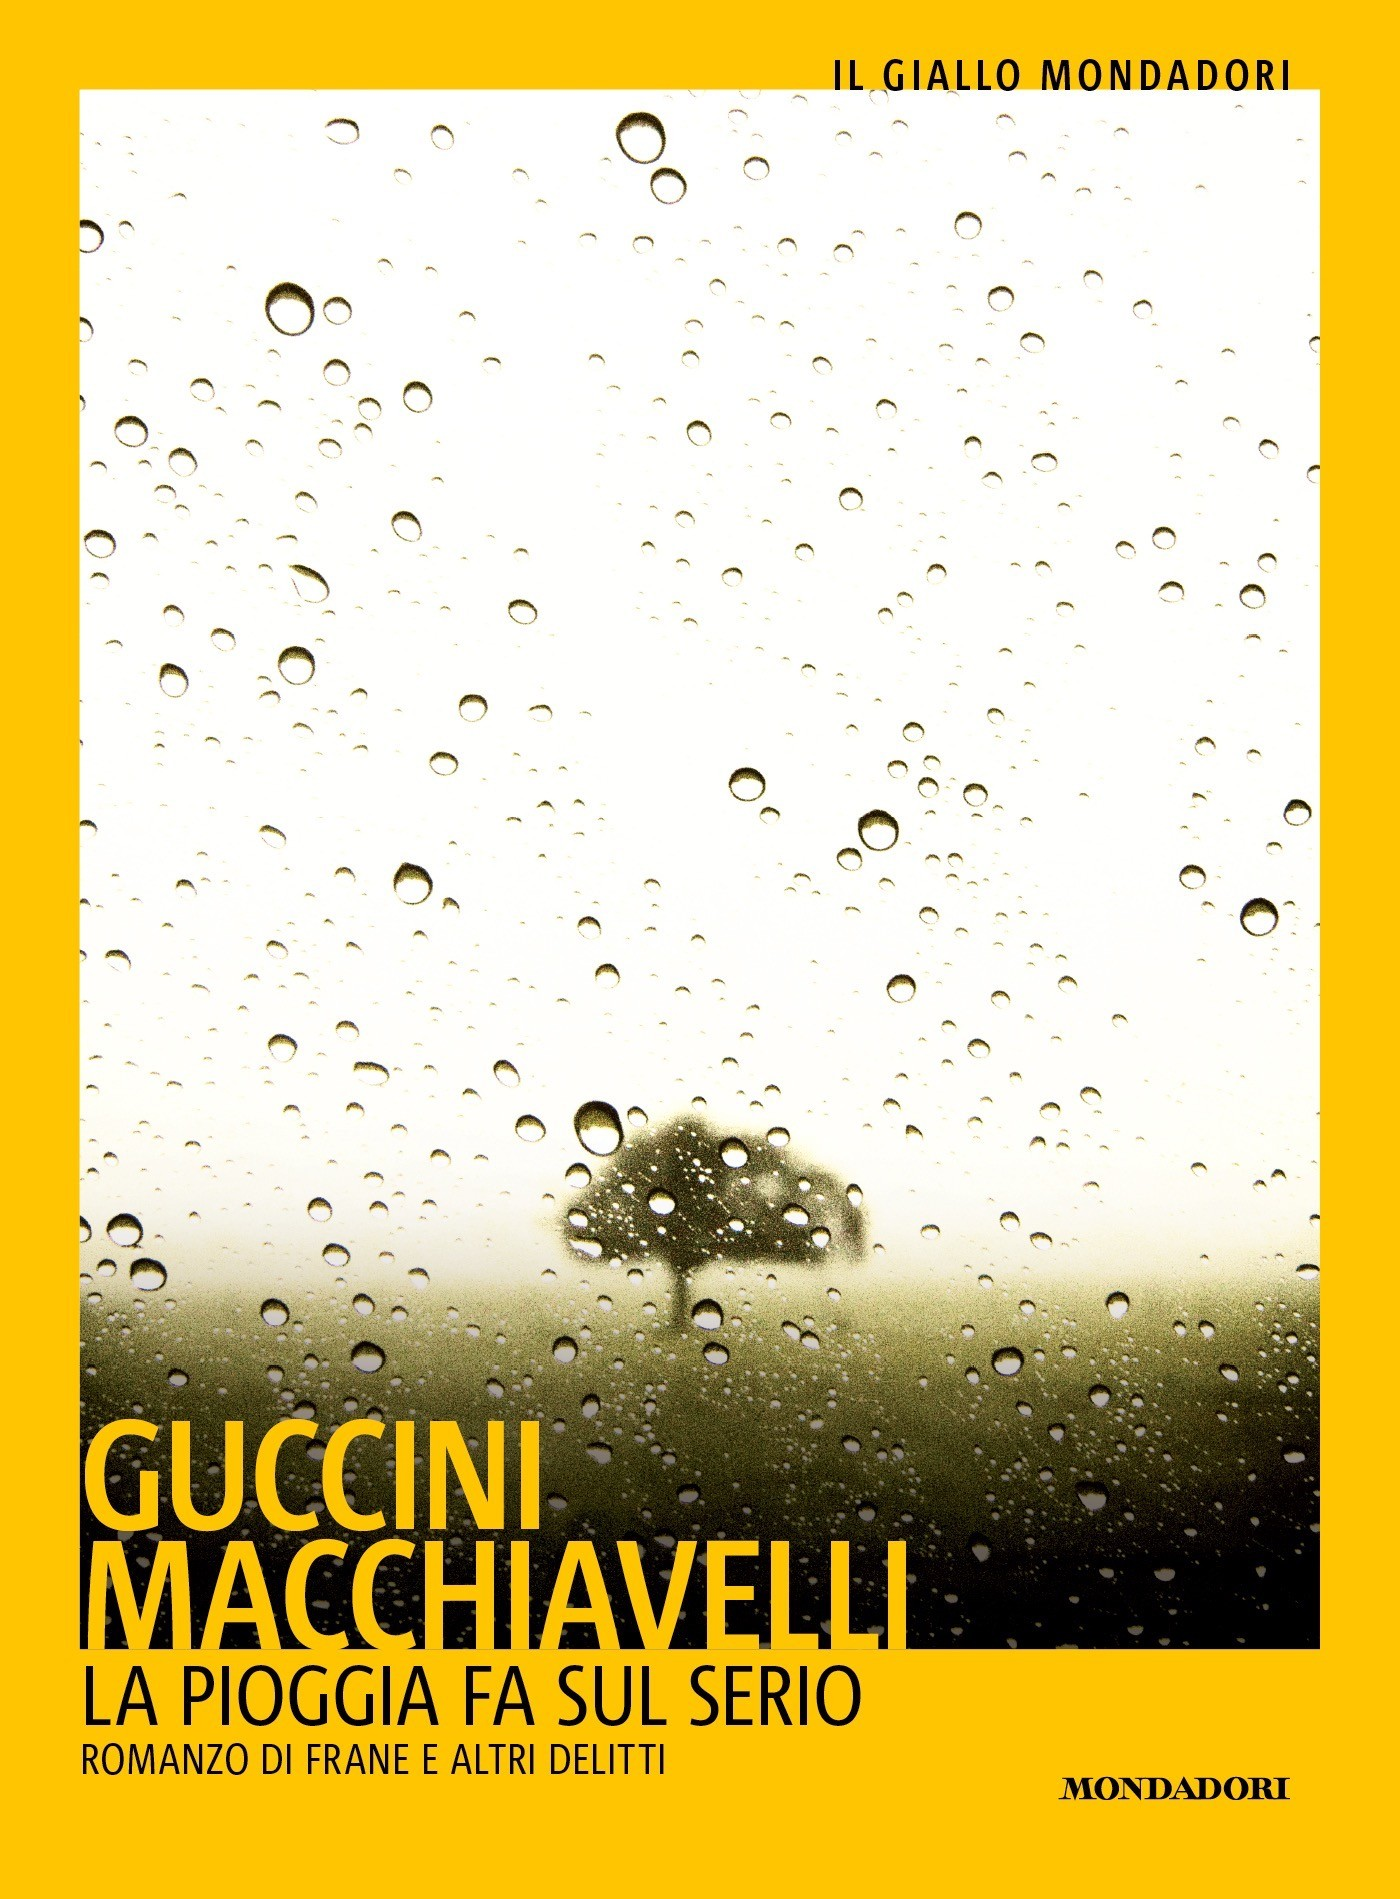 http://alessandria.bookrepublic.it/api/books/9788852055836/cover